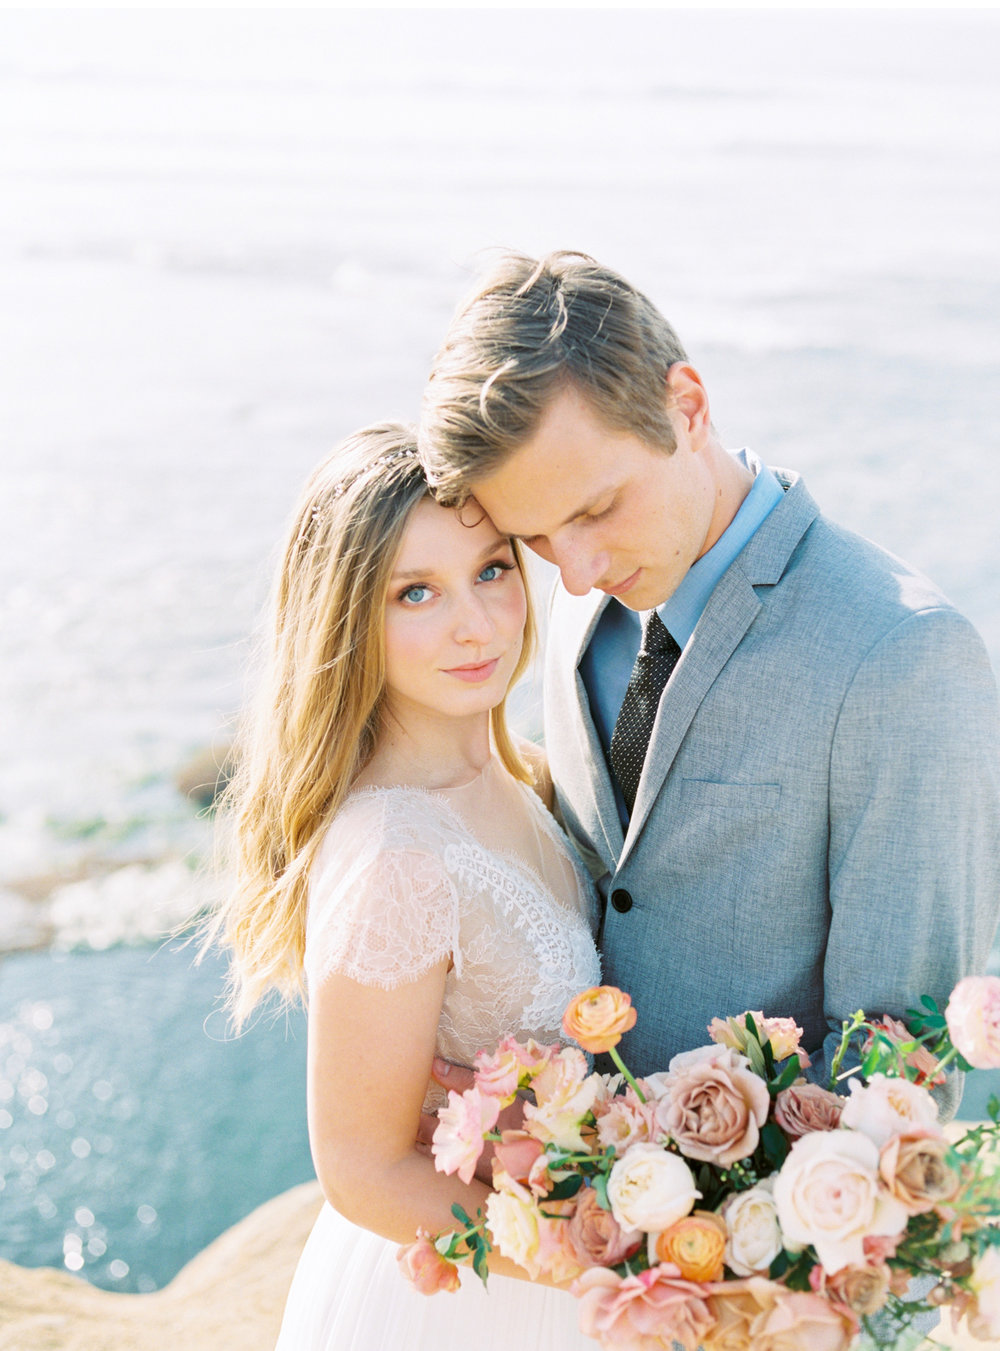 Style-Me-Pretty-California-Beach-Wedding-Natalie-Schutt-Photography_11.jpg